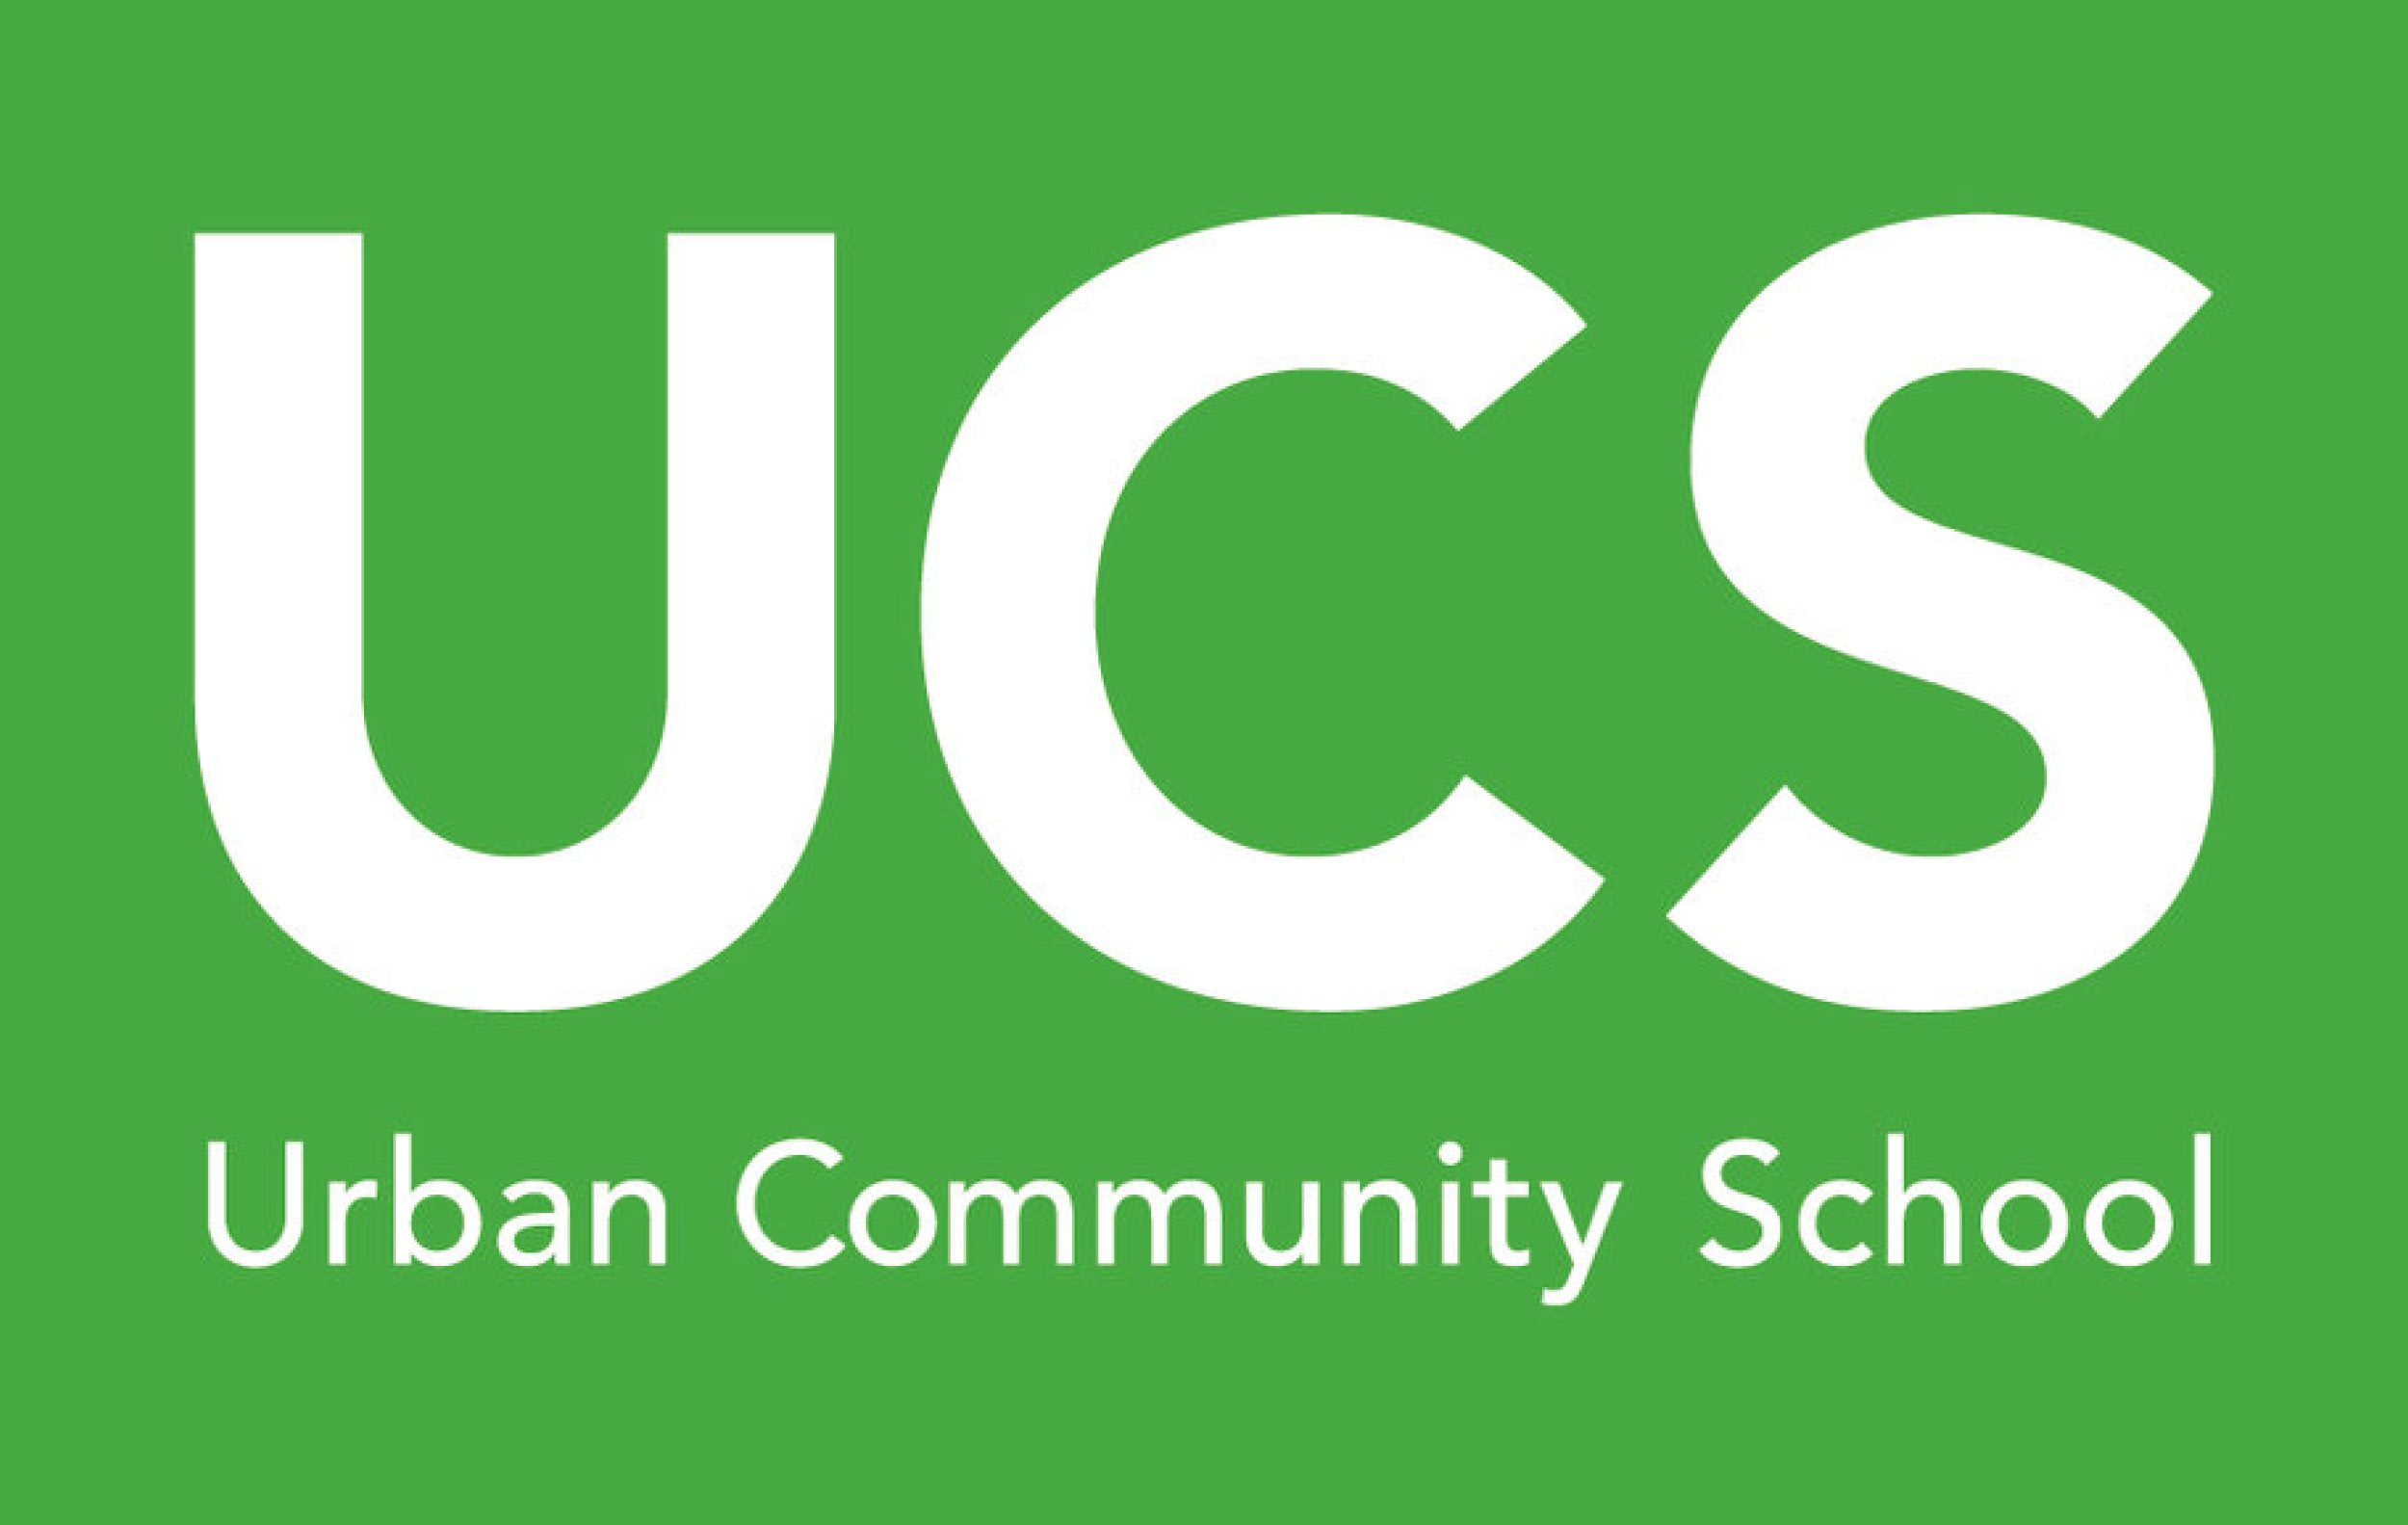 Urban Community School b